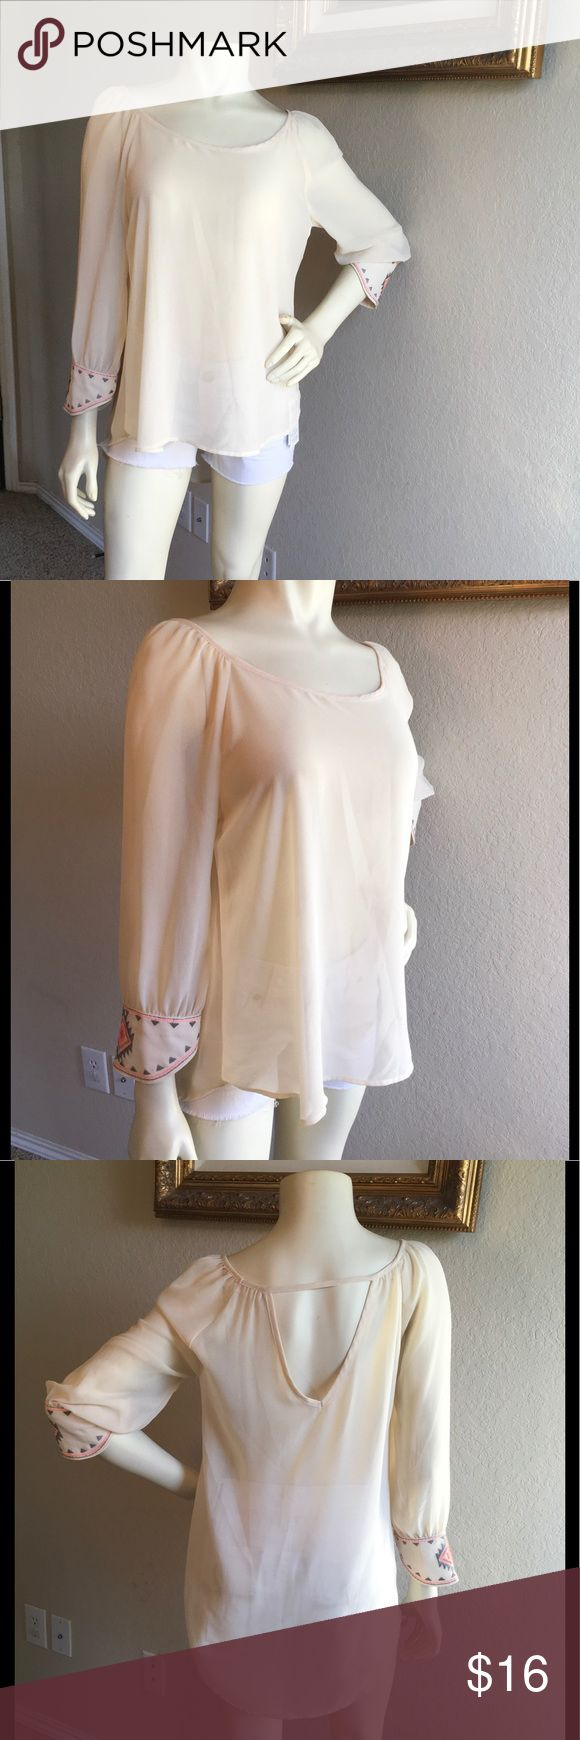 "Sweet Journey Ivory Sheer Top Aztec Stitch Sleeve This beautiful cream ivory color high-low sheer top has Aztec gray and neon pink detail on 3/4 sleeve. Flowy style top and perfect for any occasion, can dress up or down. Back has a peep hole.  Size Medium  Measurements: Bust: 20"" Length: 24 1/2"" (Front) 27 1/2"" (Back) Sweet Journey Tops Blouses"